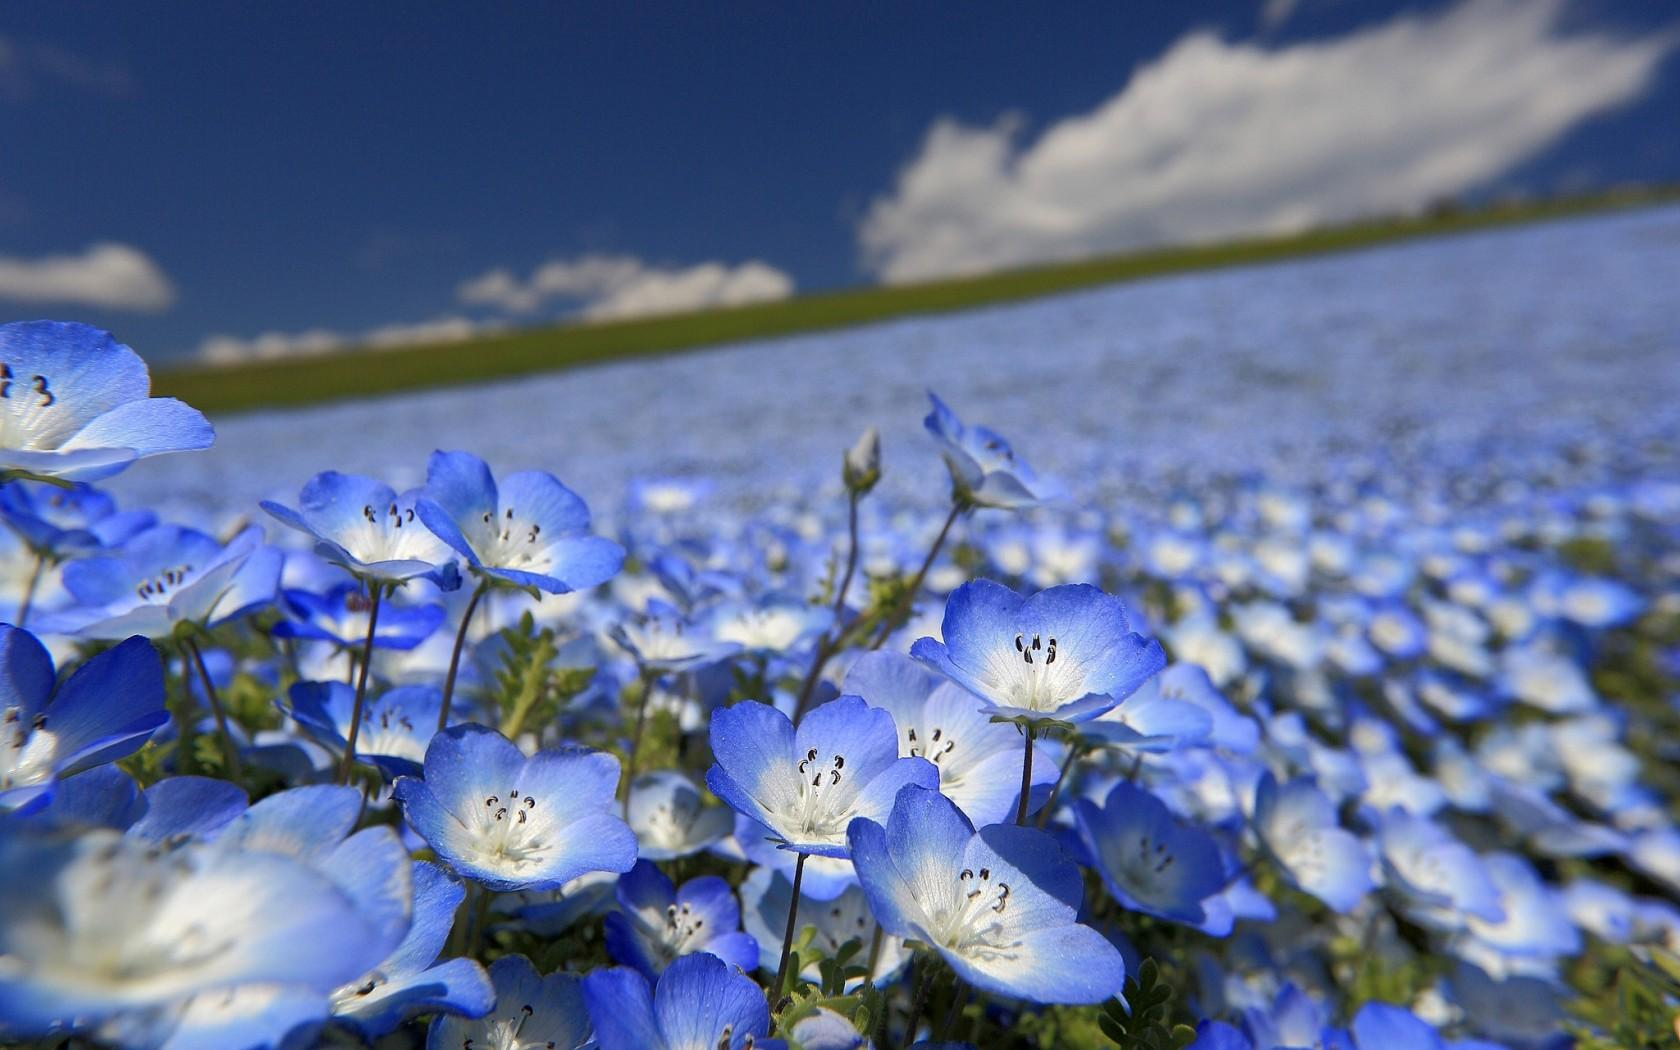 List of blue flowers 40 background hdflowerwallpaper list of blue flowers widescreen wallpaper izmirmasajfo Gallery